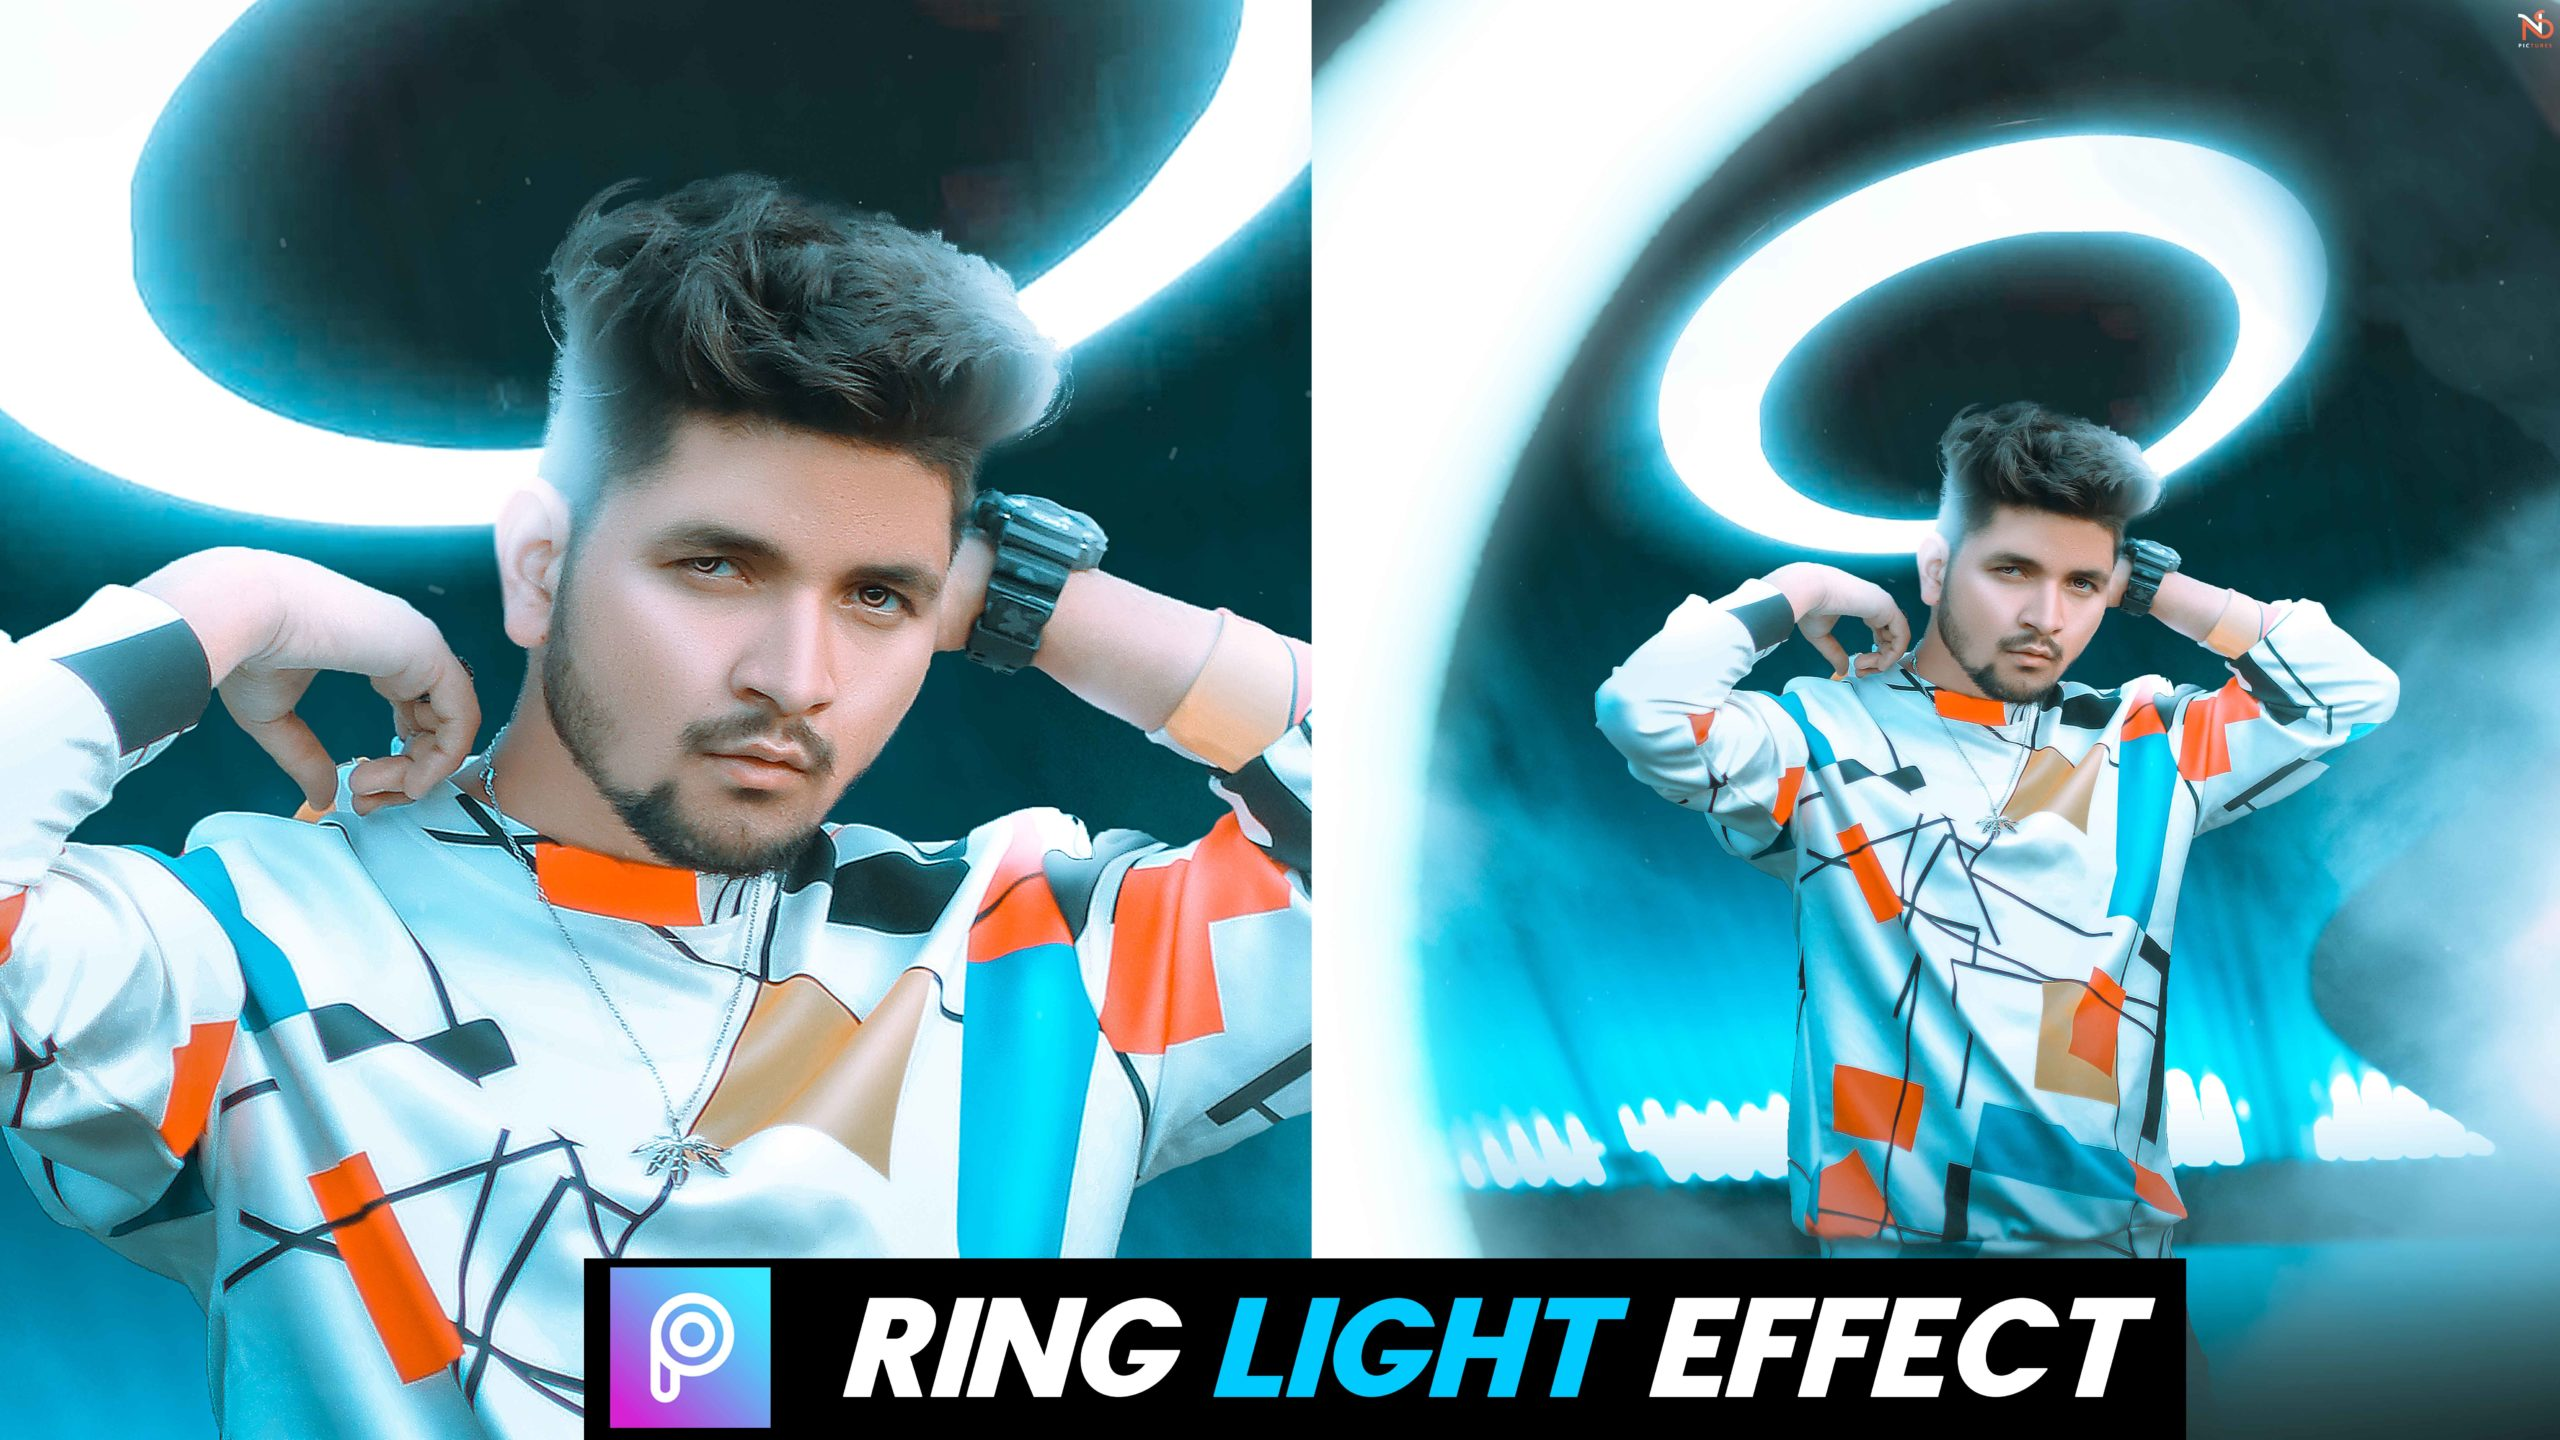 Ring light manipulation background editing download HD